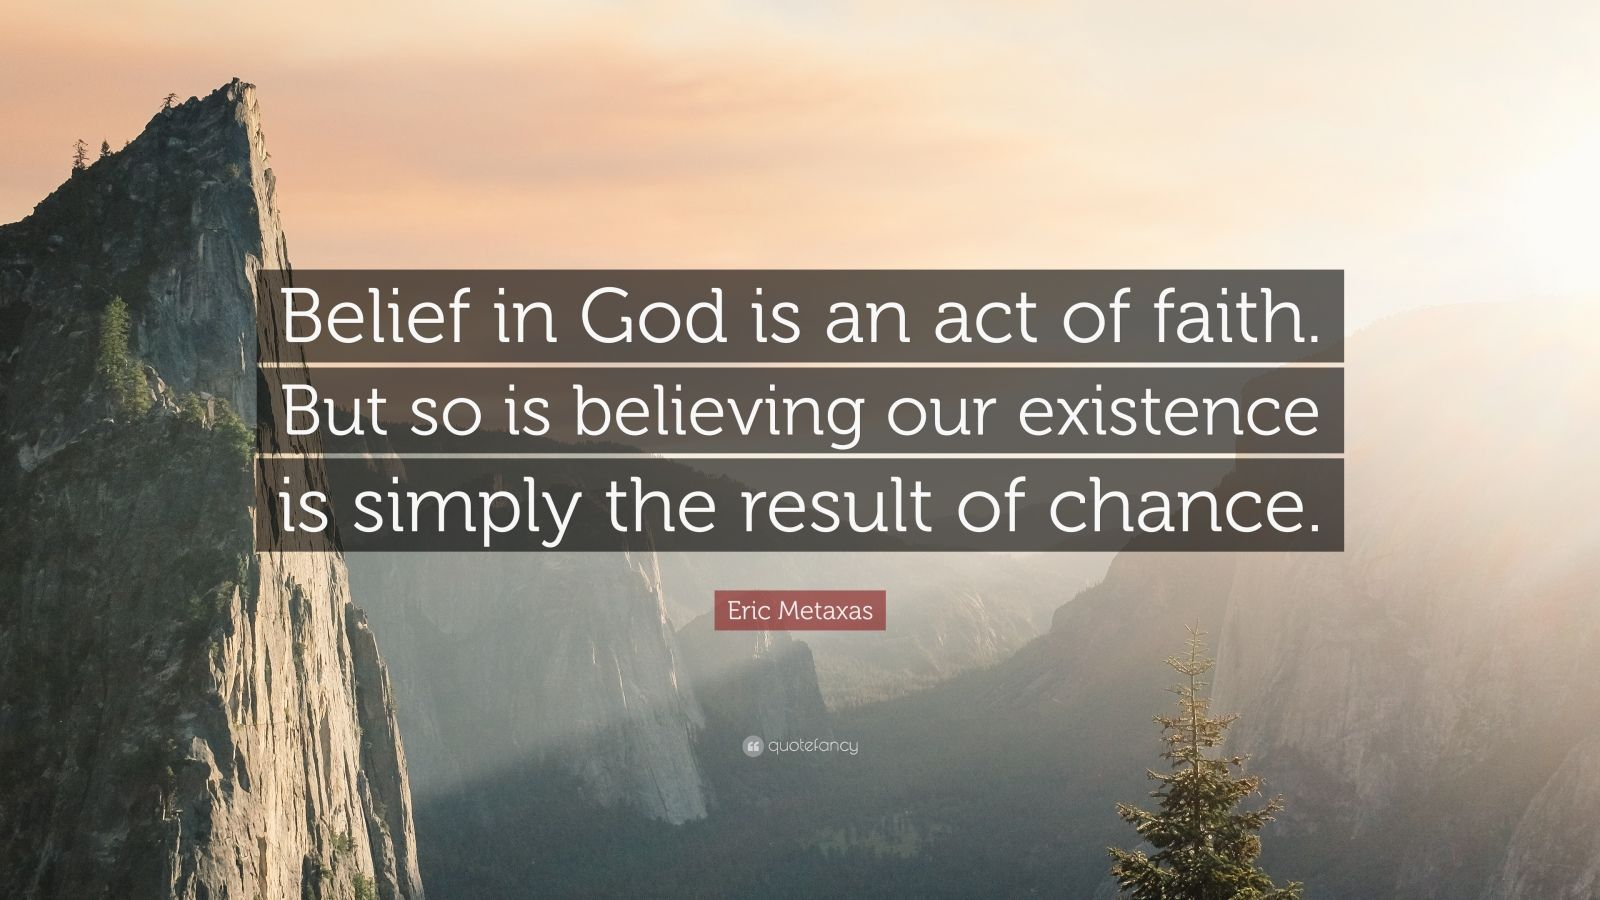 belief in god New research has found that a person's belief in god is strengthened when considering what might have been, especially after a major life event that could have turned out badly.